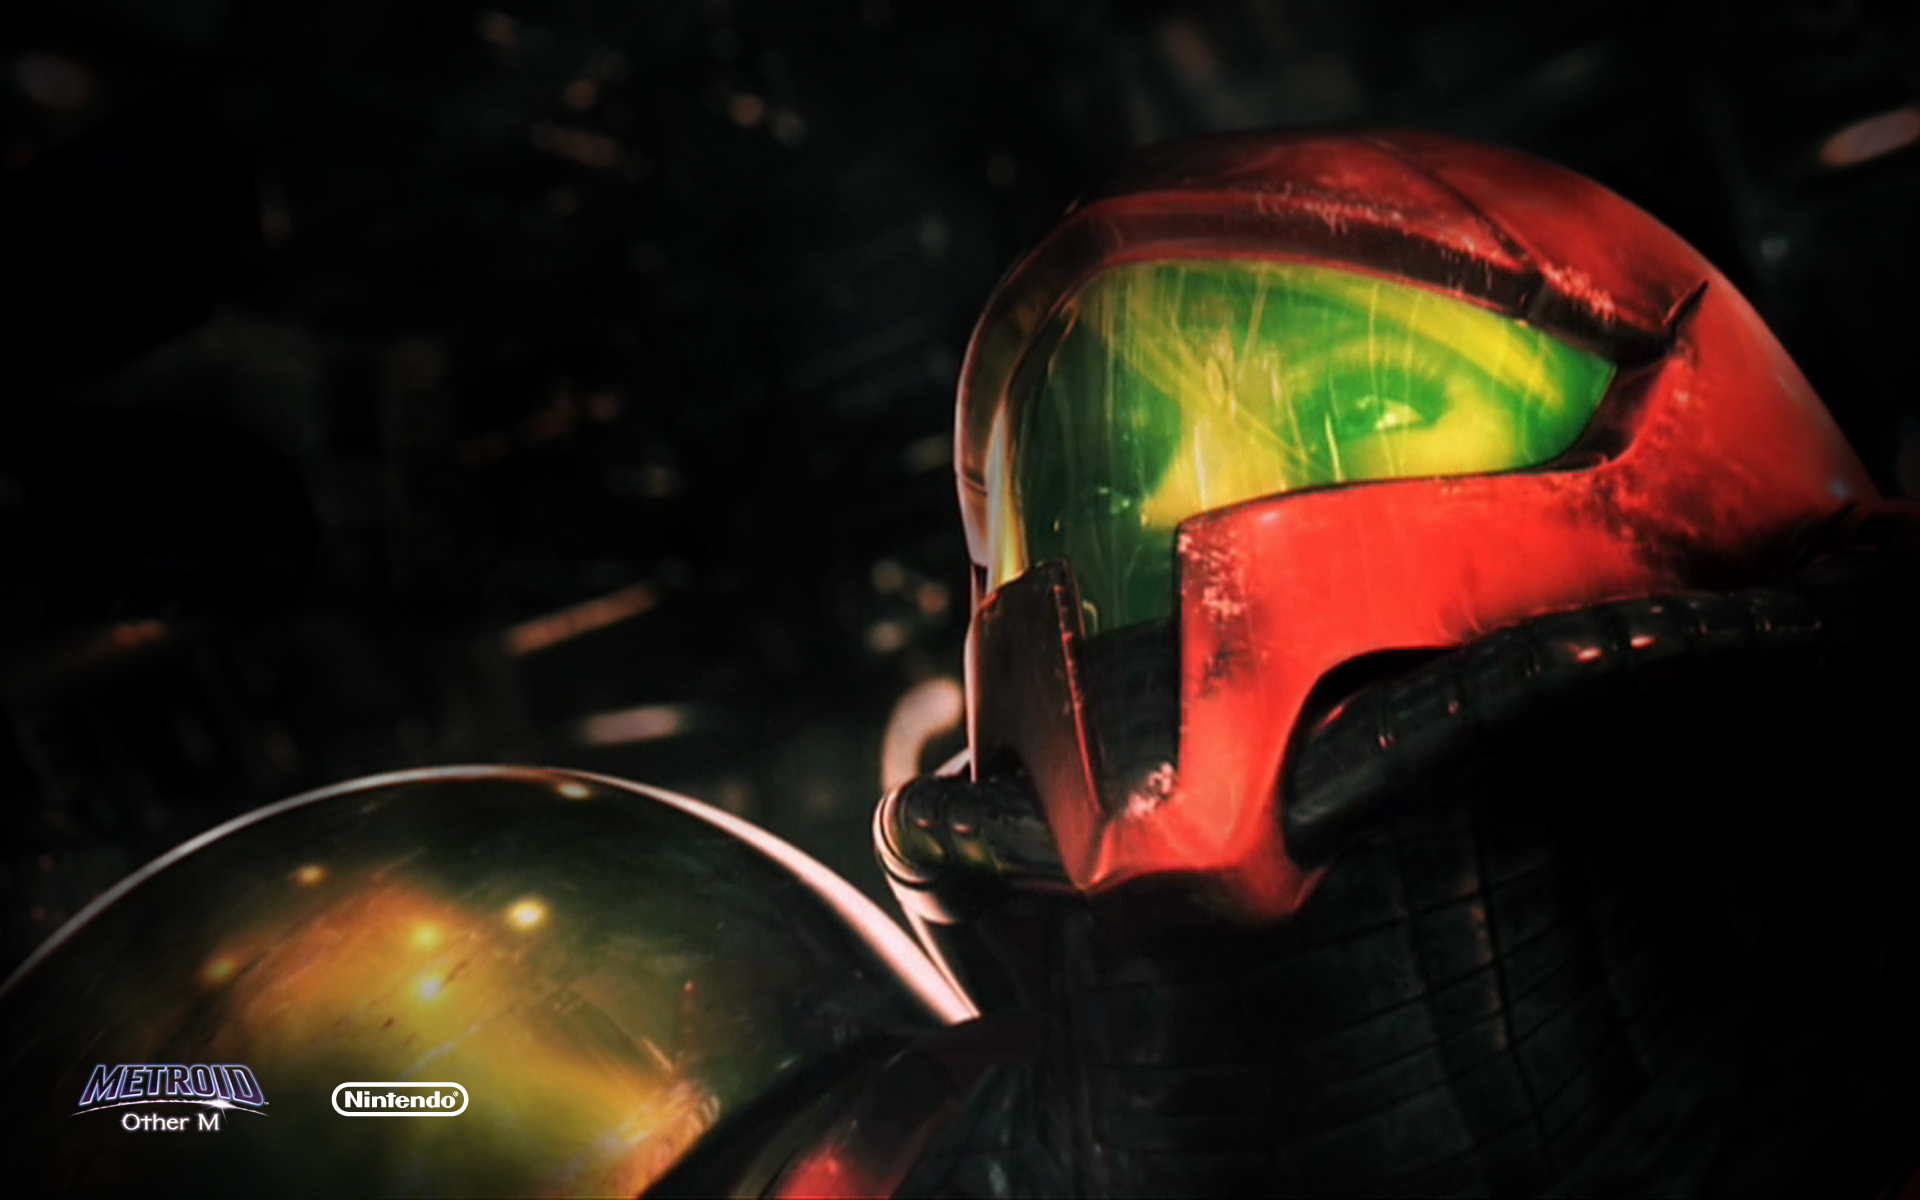 Retro Studios Next Game Could Be Announced 'In The Not So Distant Future'